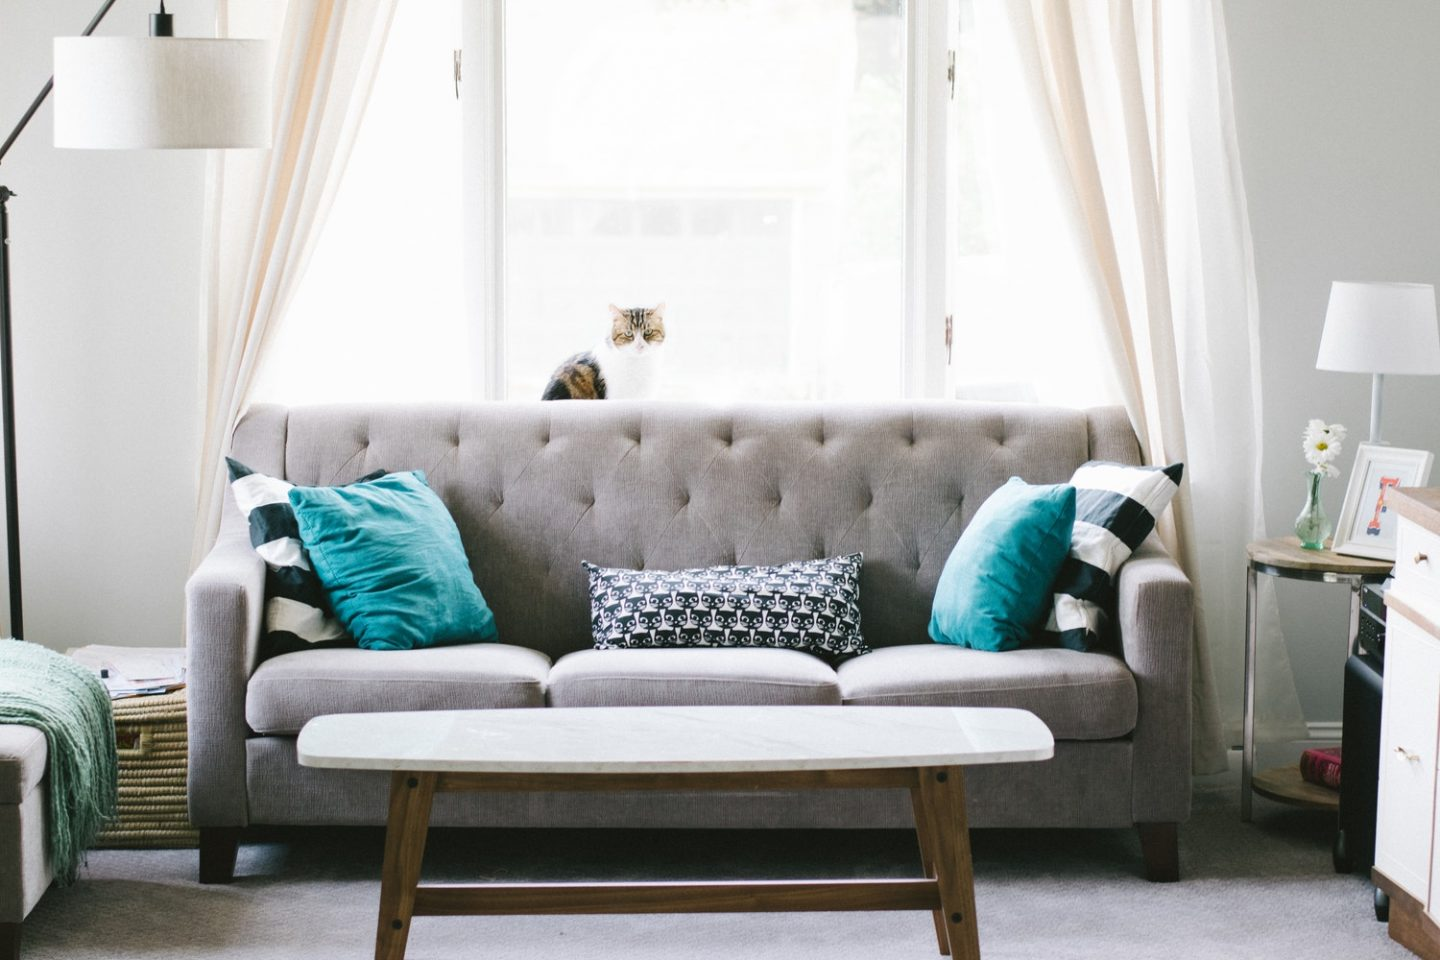 Enhancing the atmosphere in your room